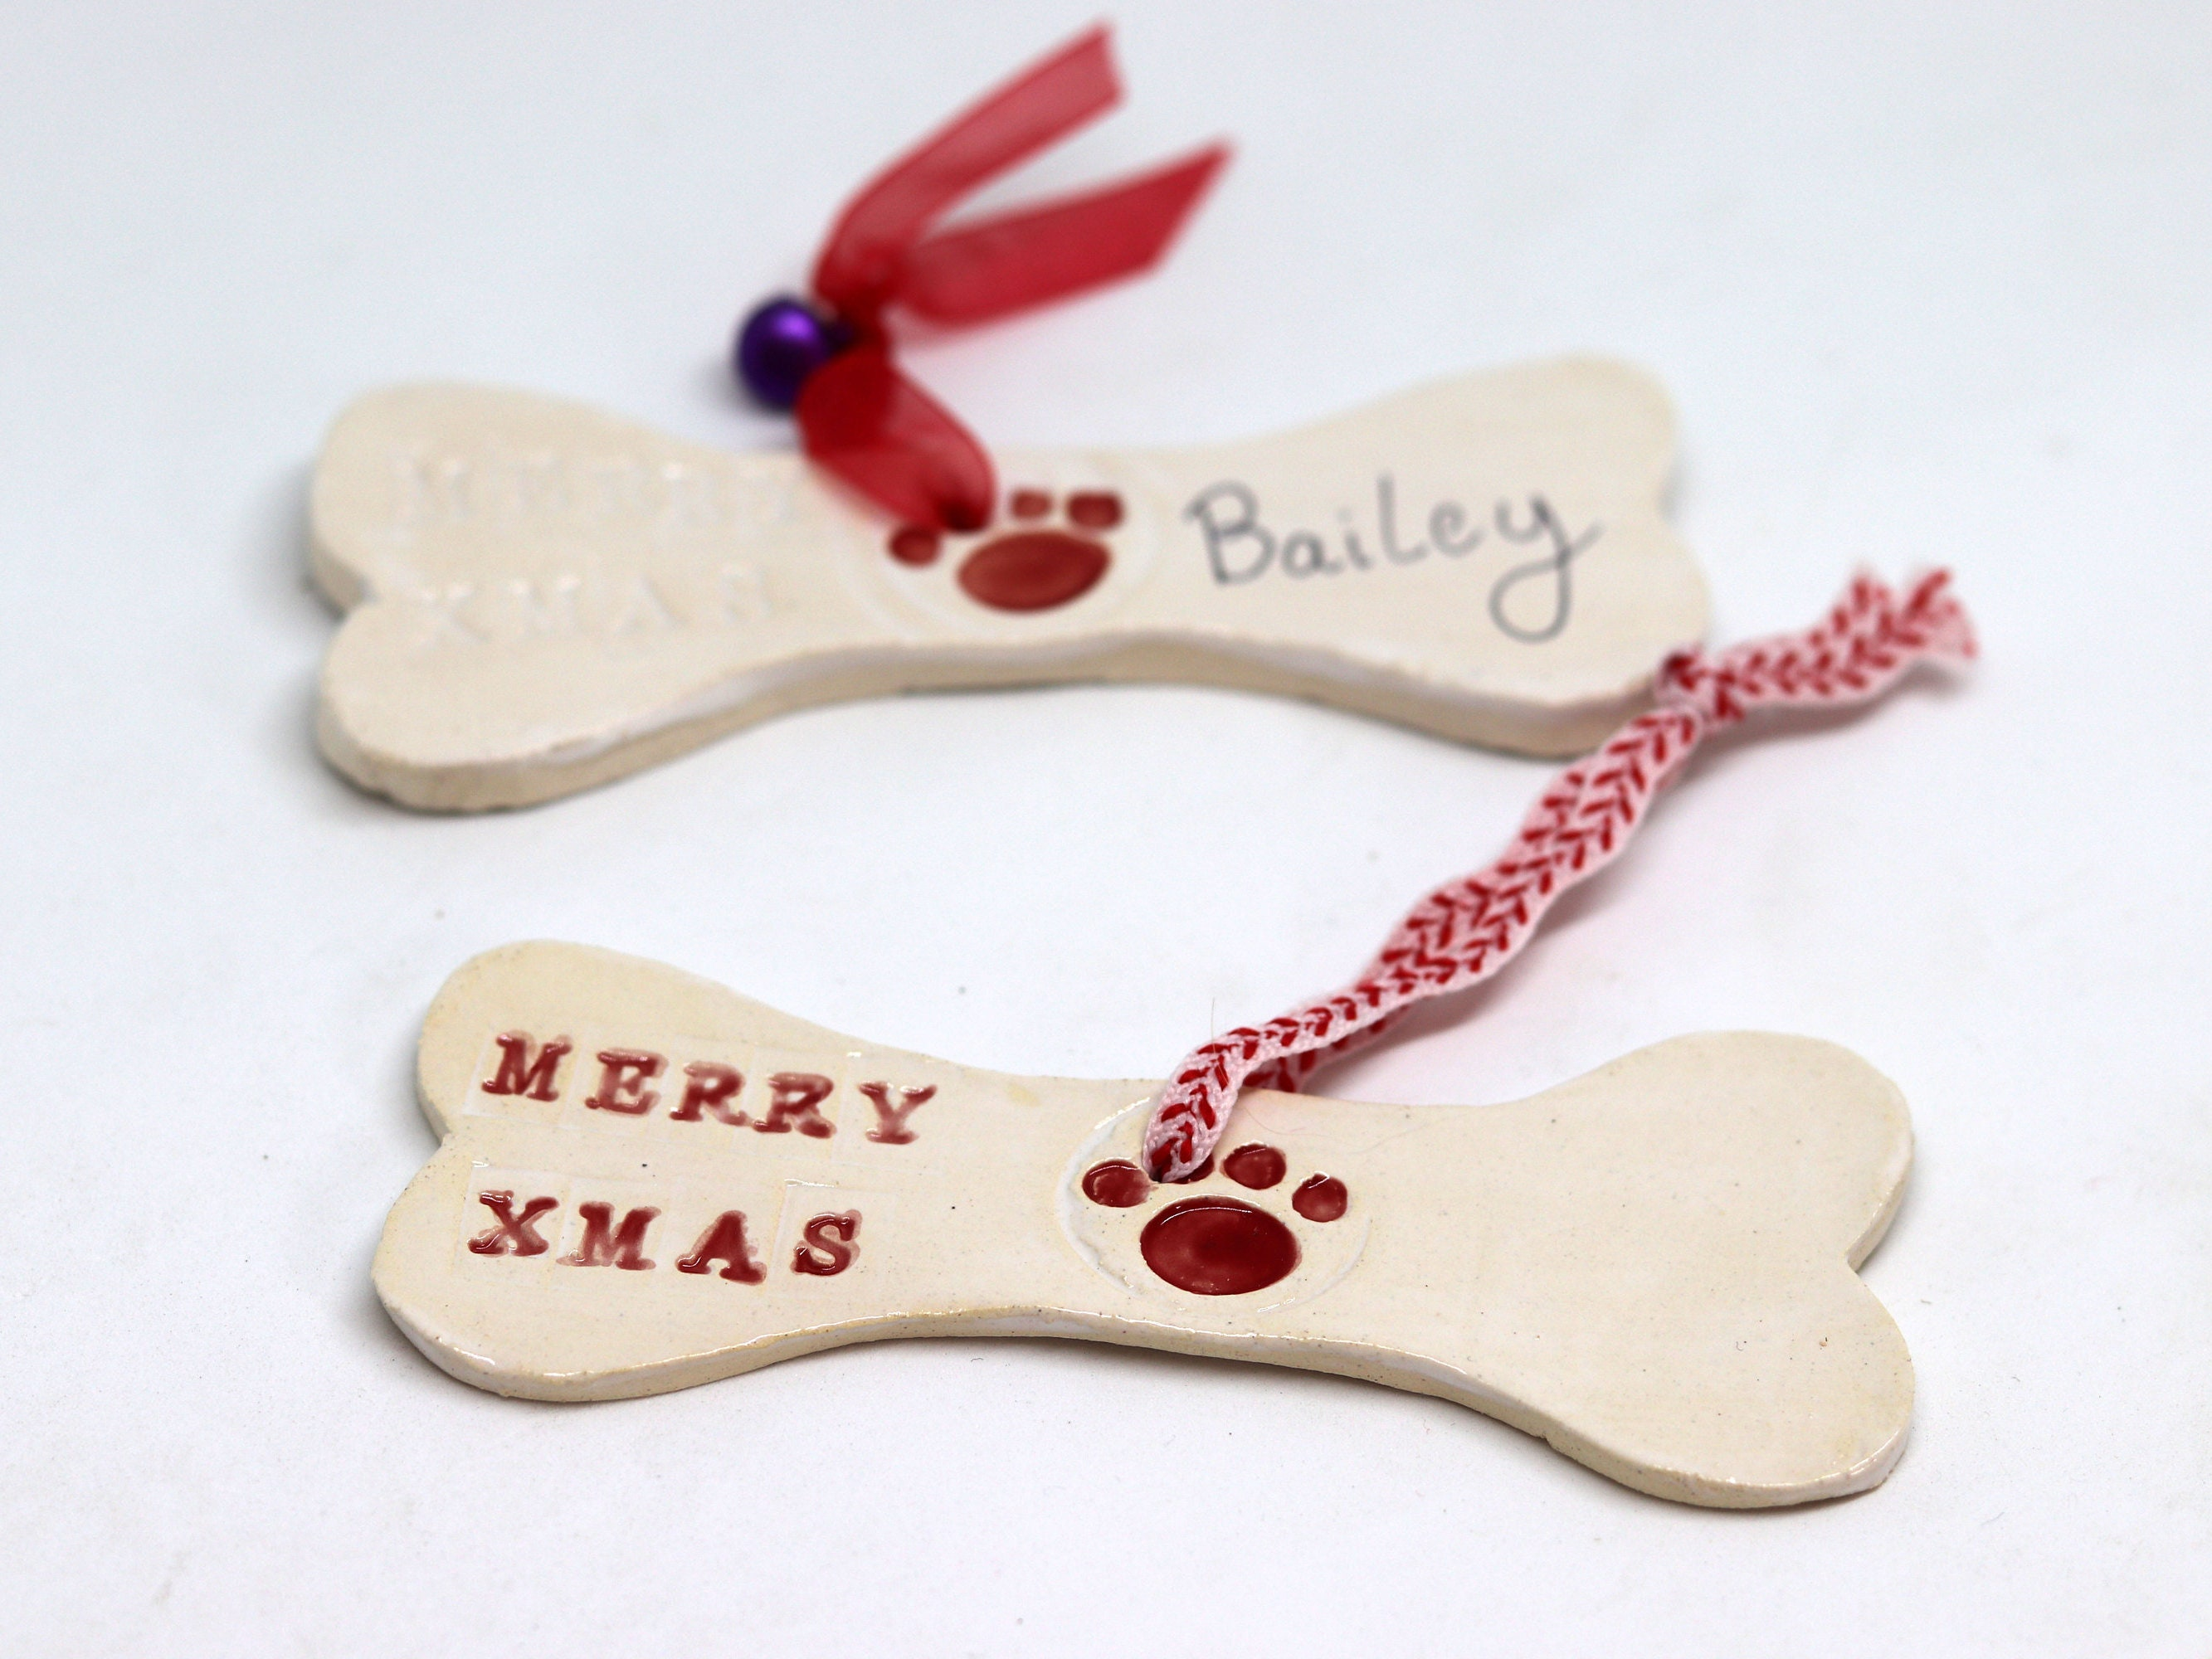 merry christmas dog bone xmas tree decoration personalise your dog gift with your dogs name for your home decor to help say merry christmas - How Do You Say Merry Christmas In Australia